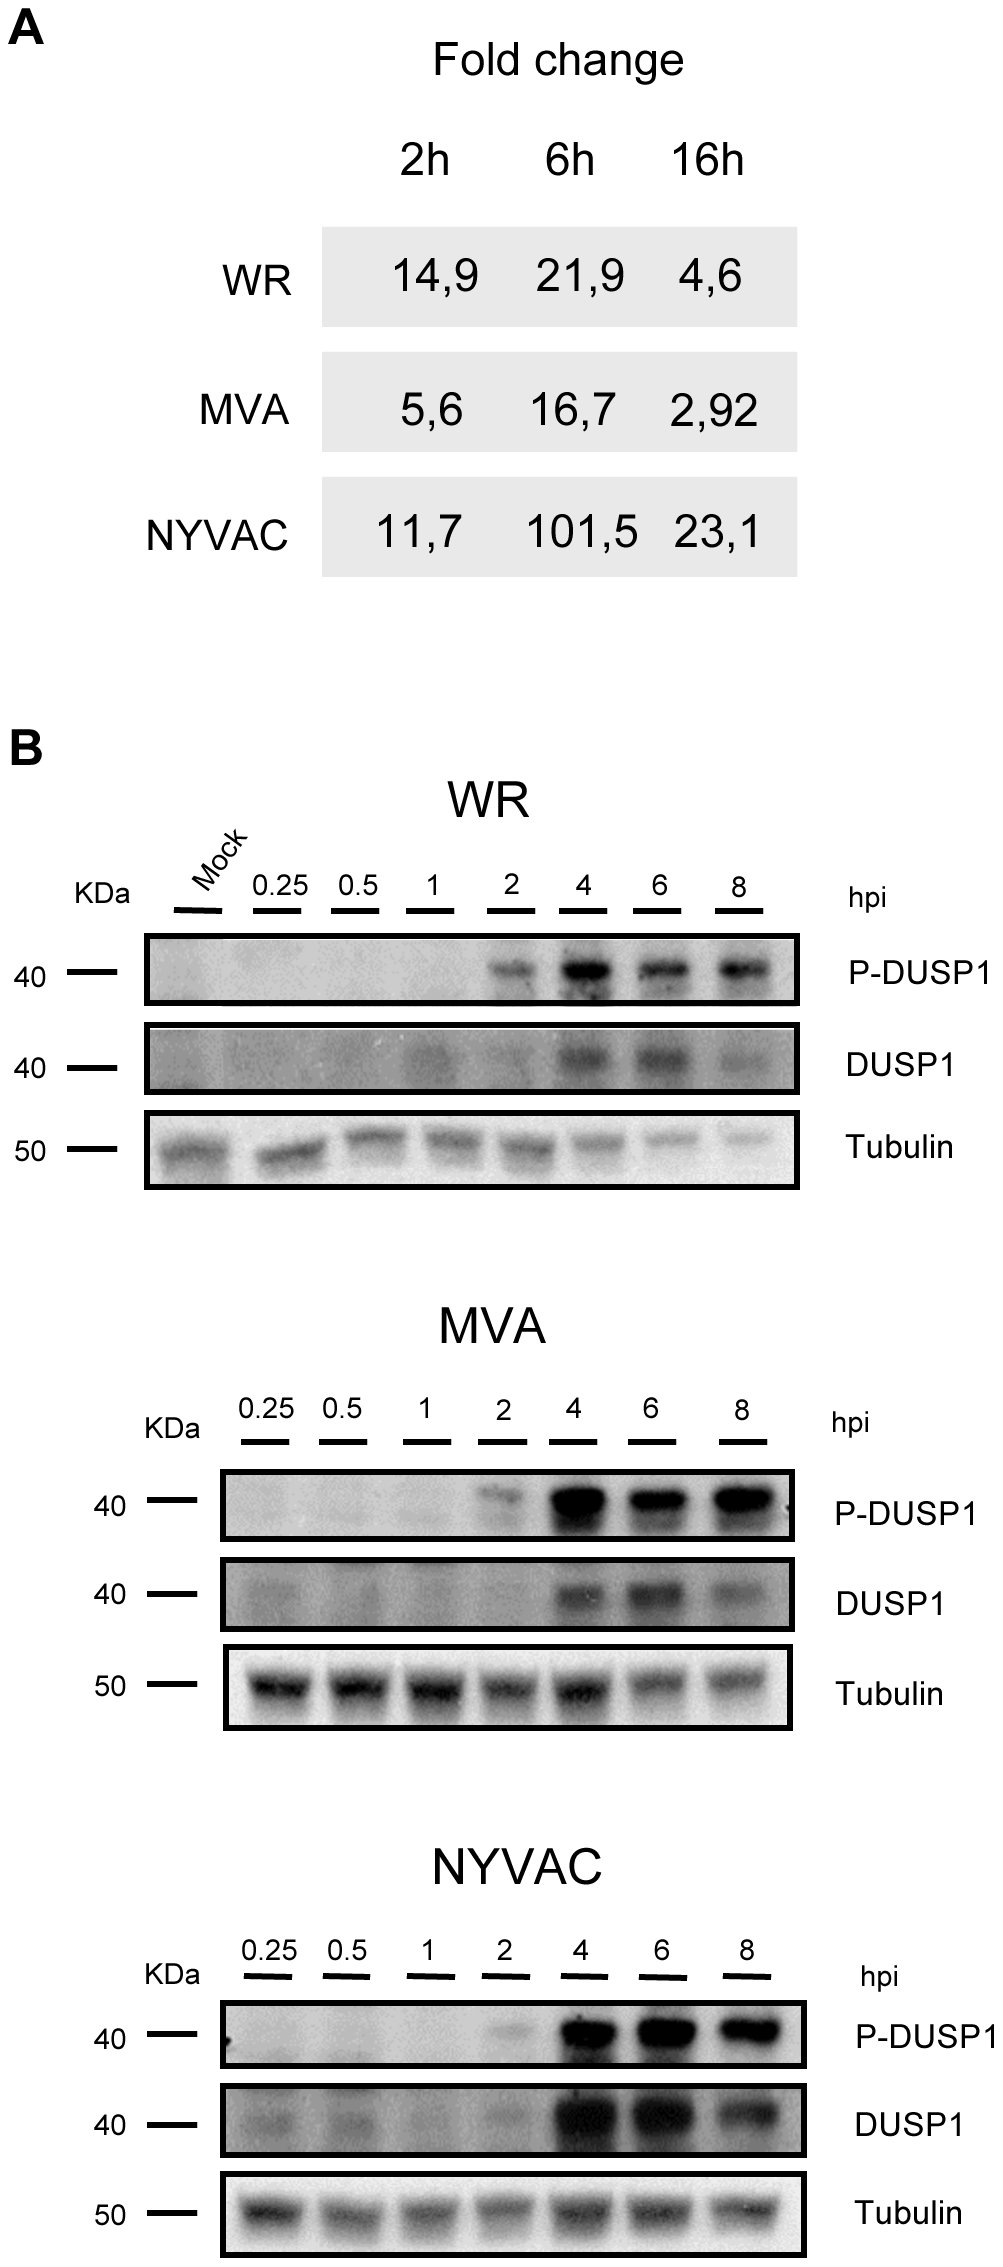 DUSP1 expression is upregulated upon VACV infection.